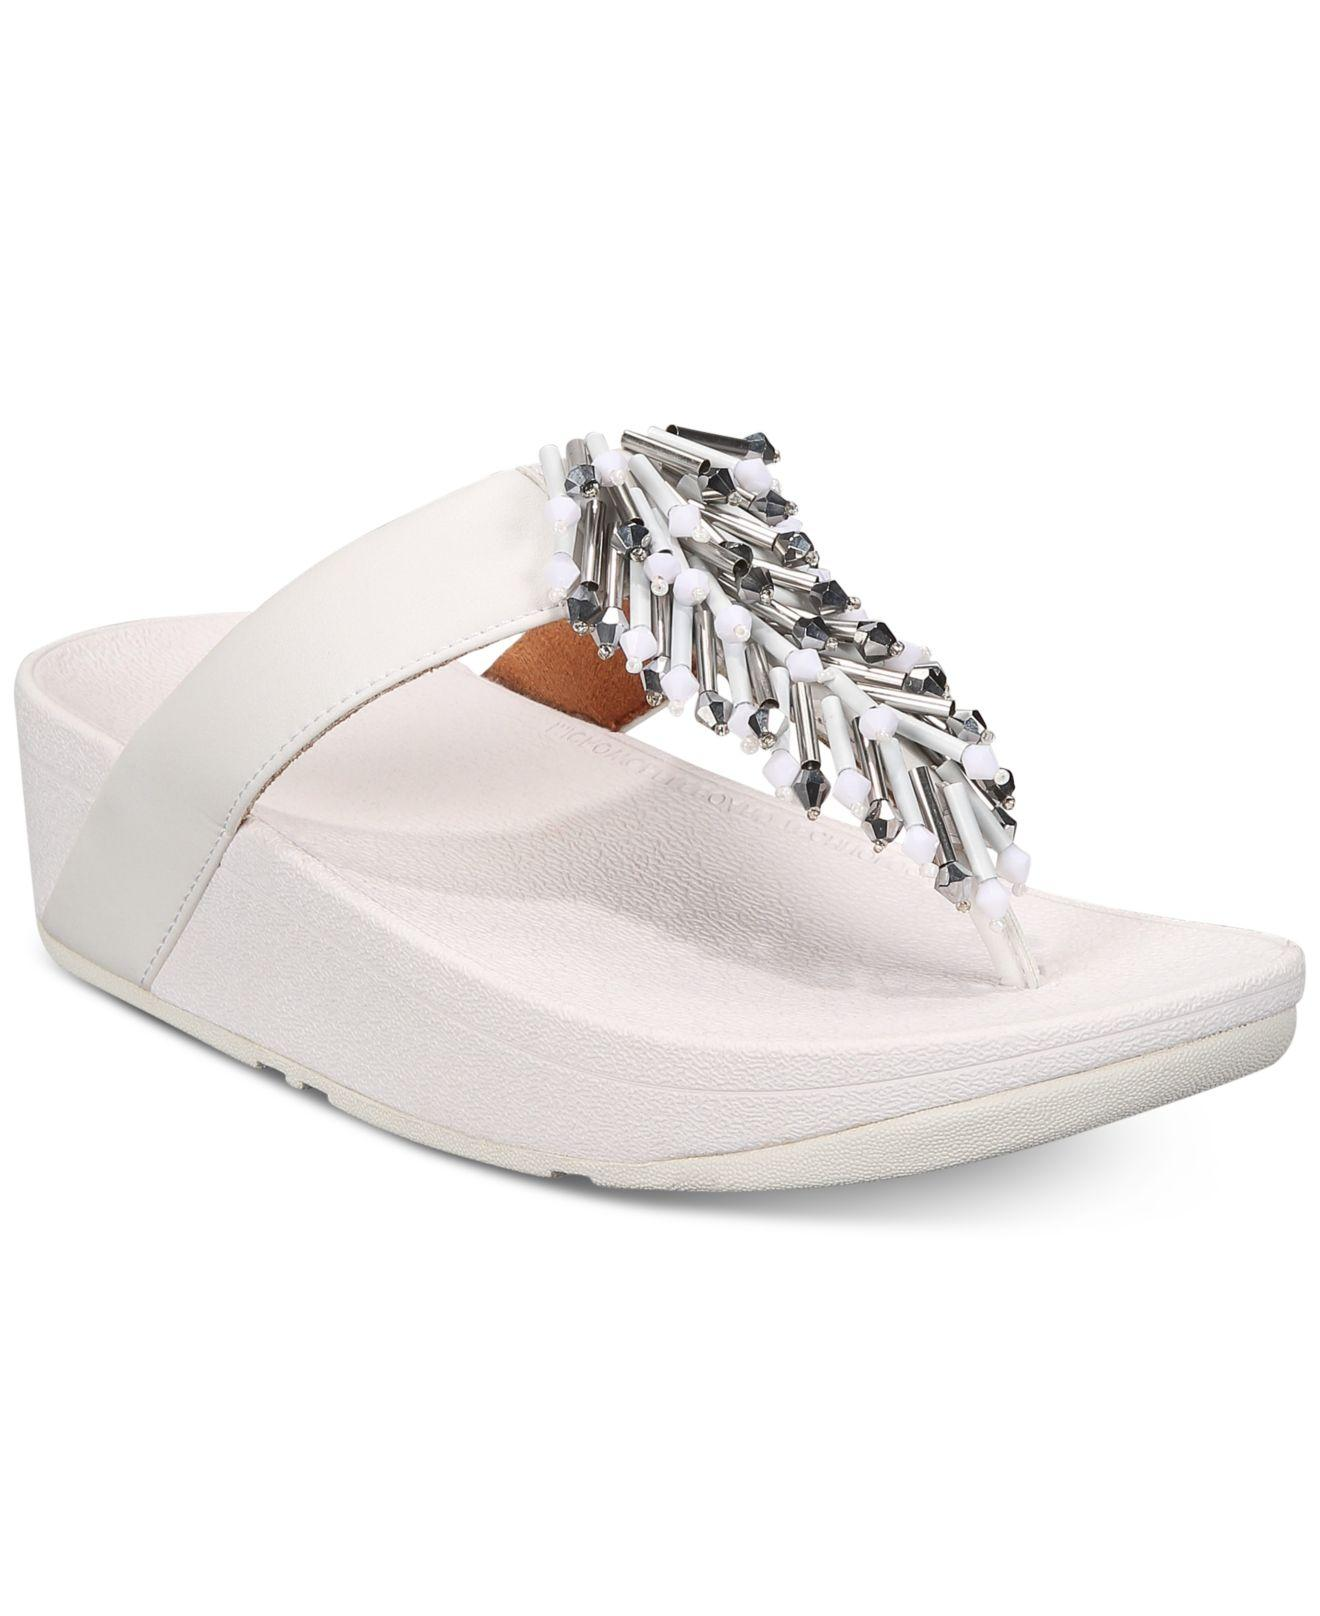 27dcb54ed Lyst - Fitflop Jive Treasure Flip-flop Sandals in White